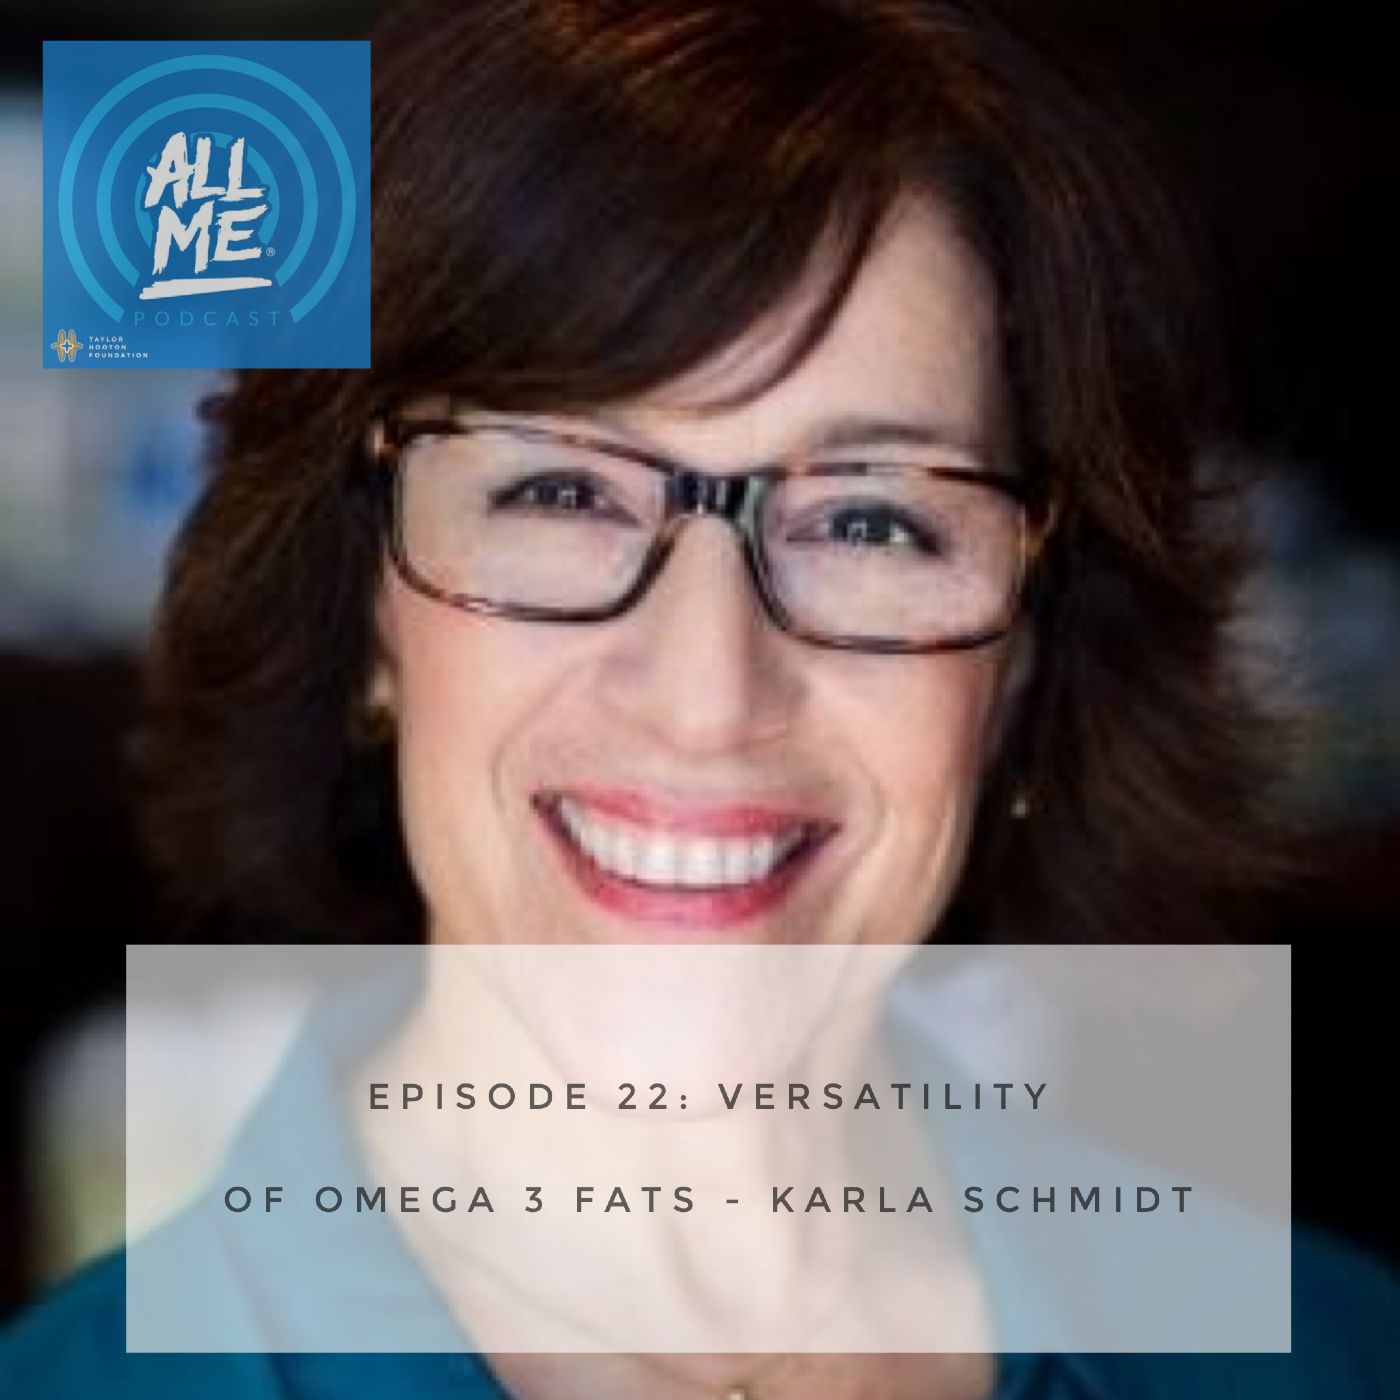 Episode 22: Versatility of Omega 3 Fats - Karla Schmidt